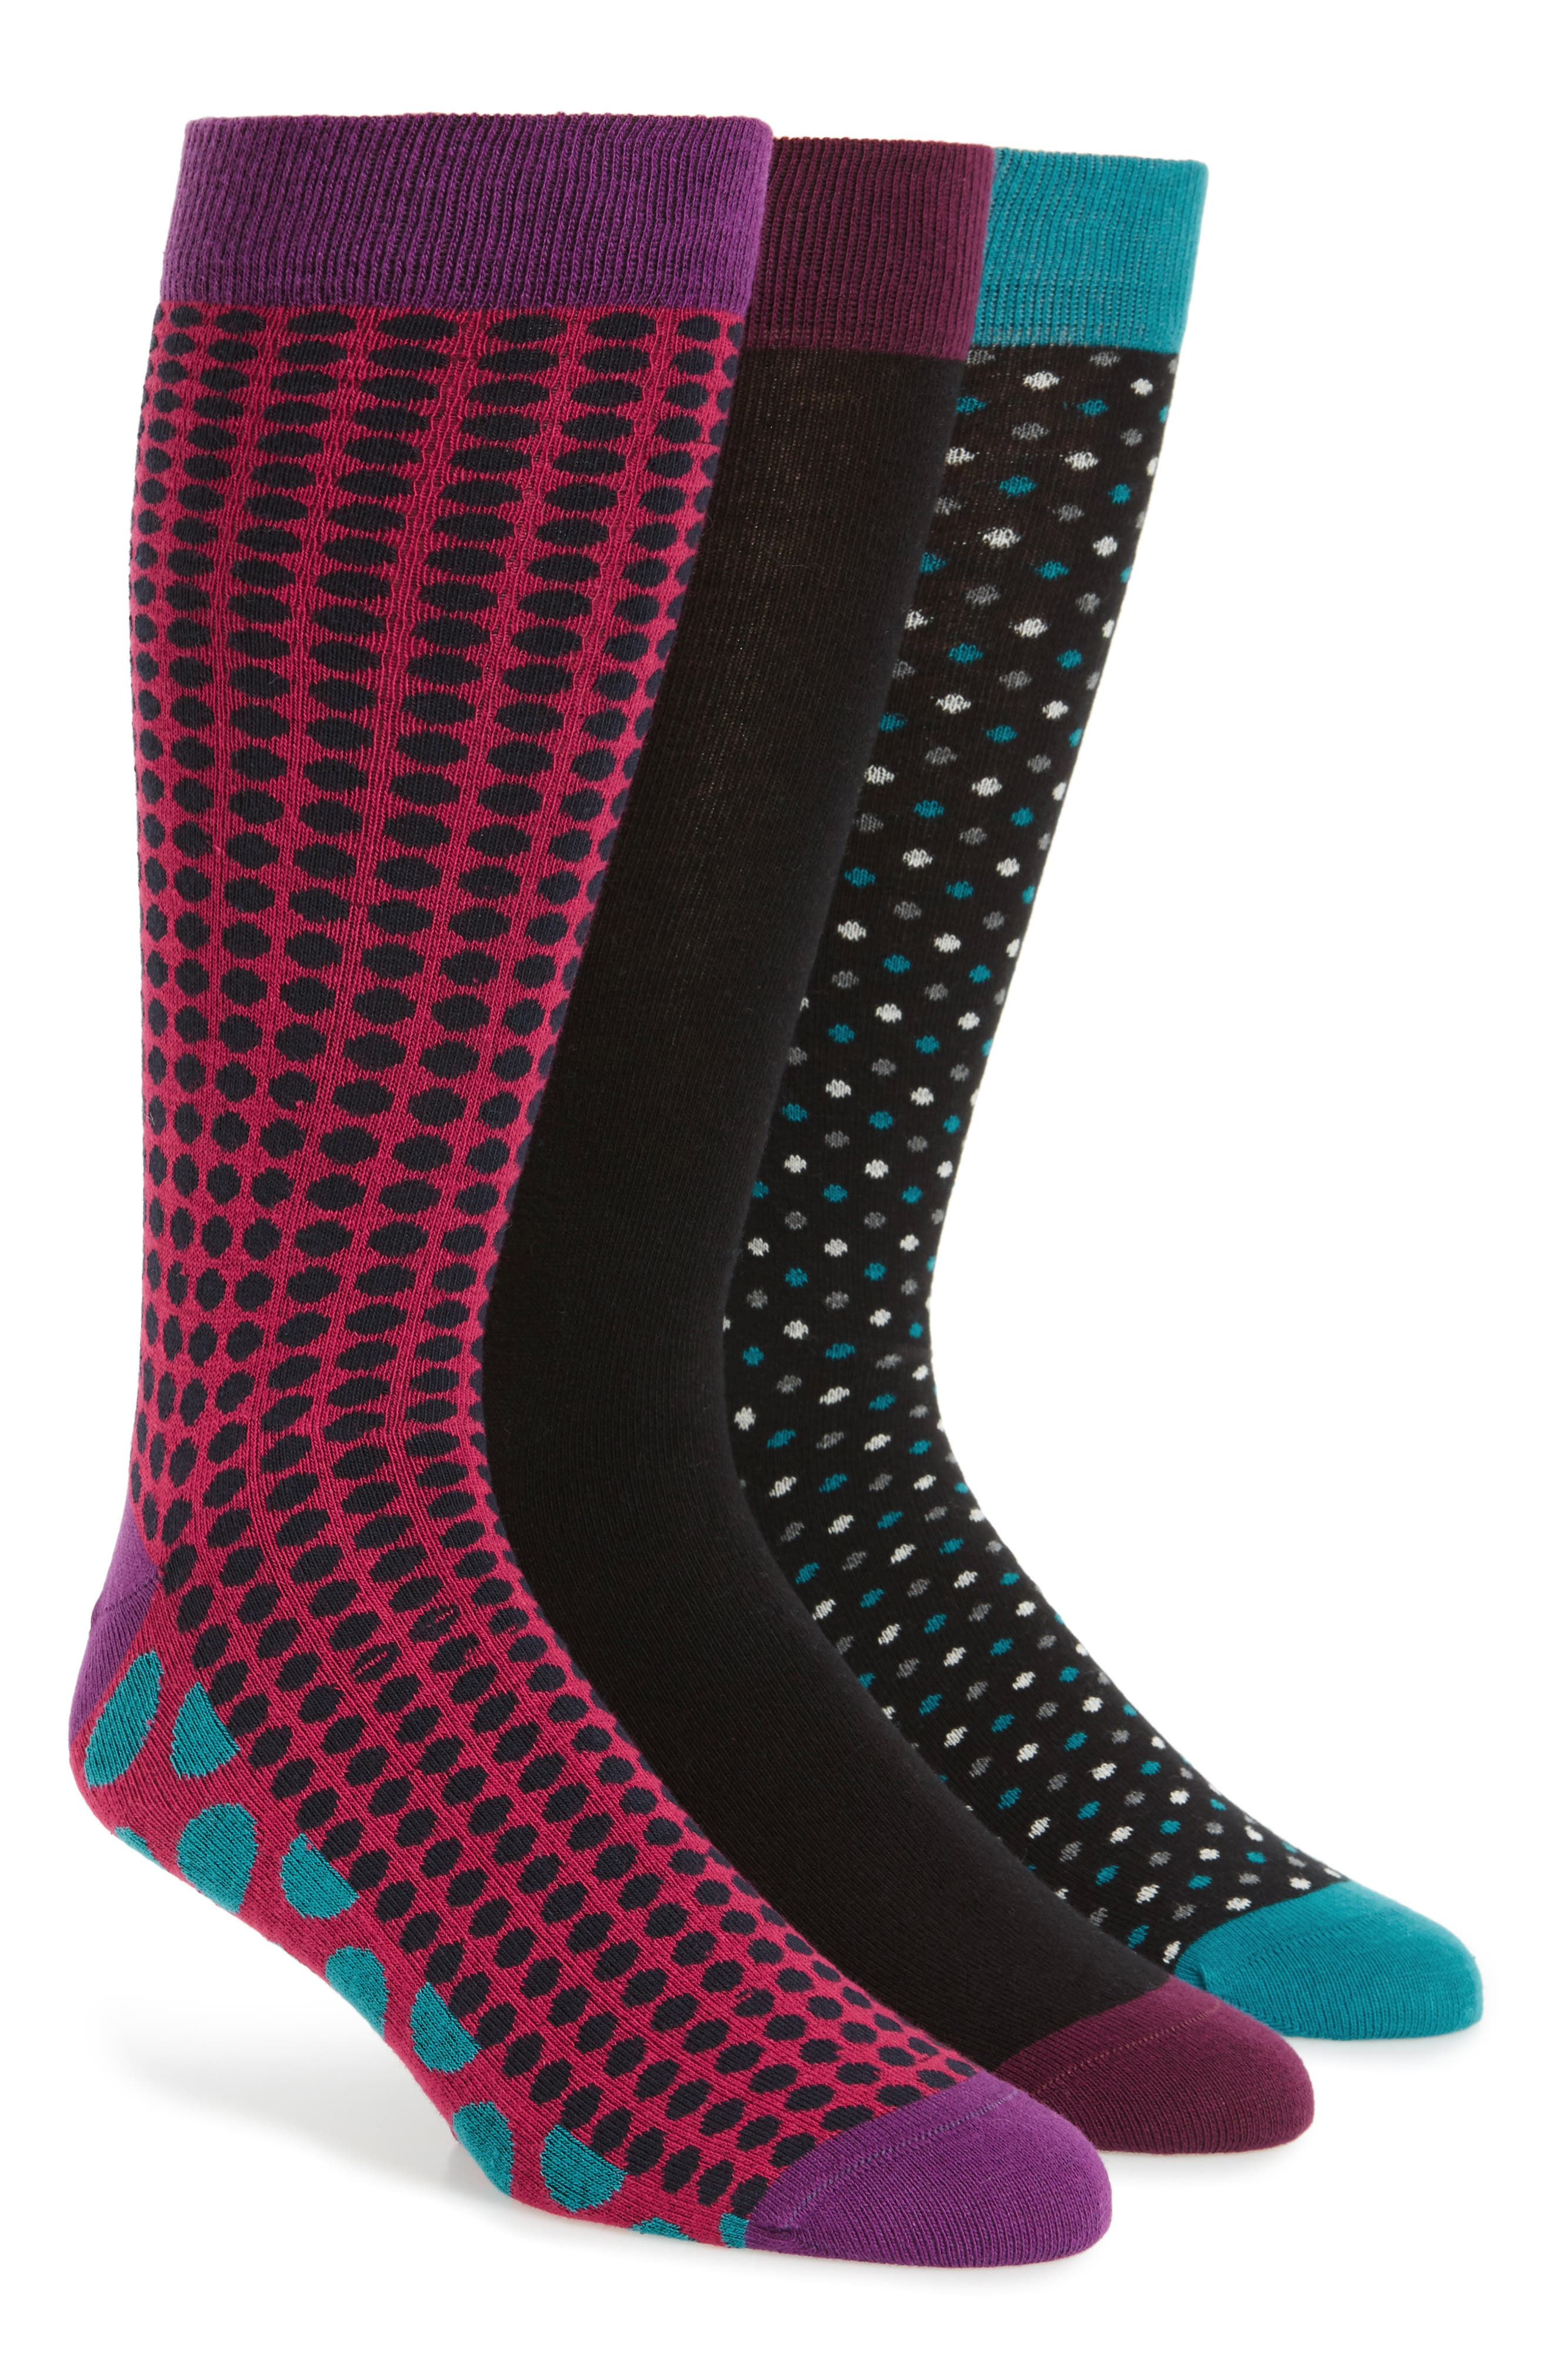 Assorted 3-Pack Crew Socks,                             Main thumbnail 1, color,                             Black Assorted